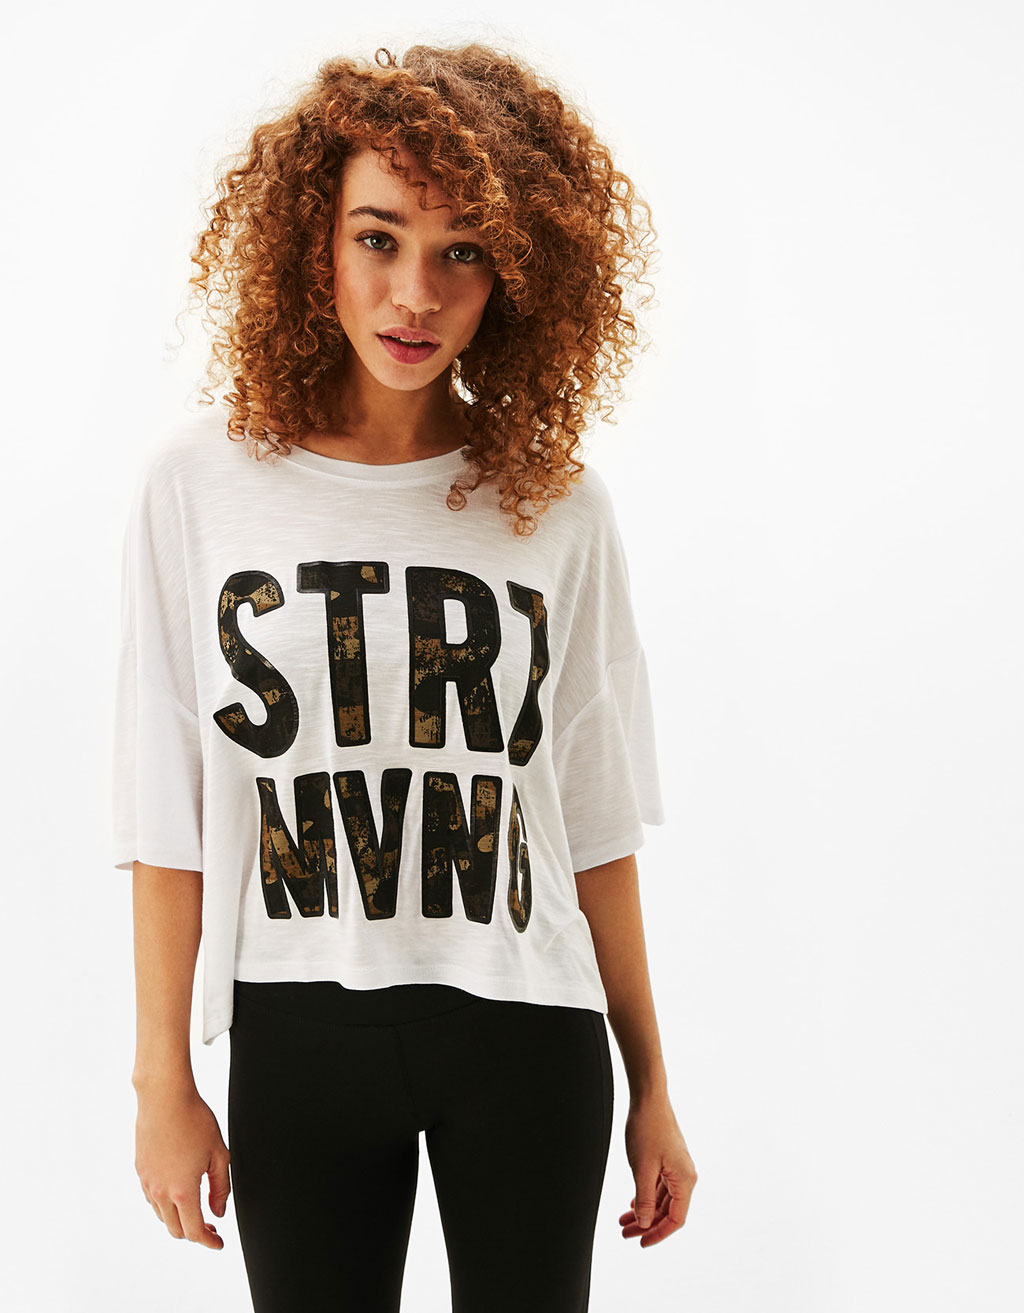 Cropped sports T-shirt with printed slogan